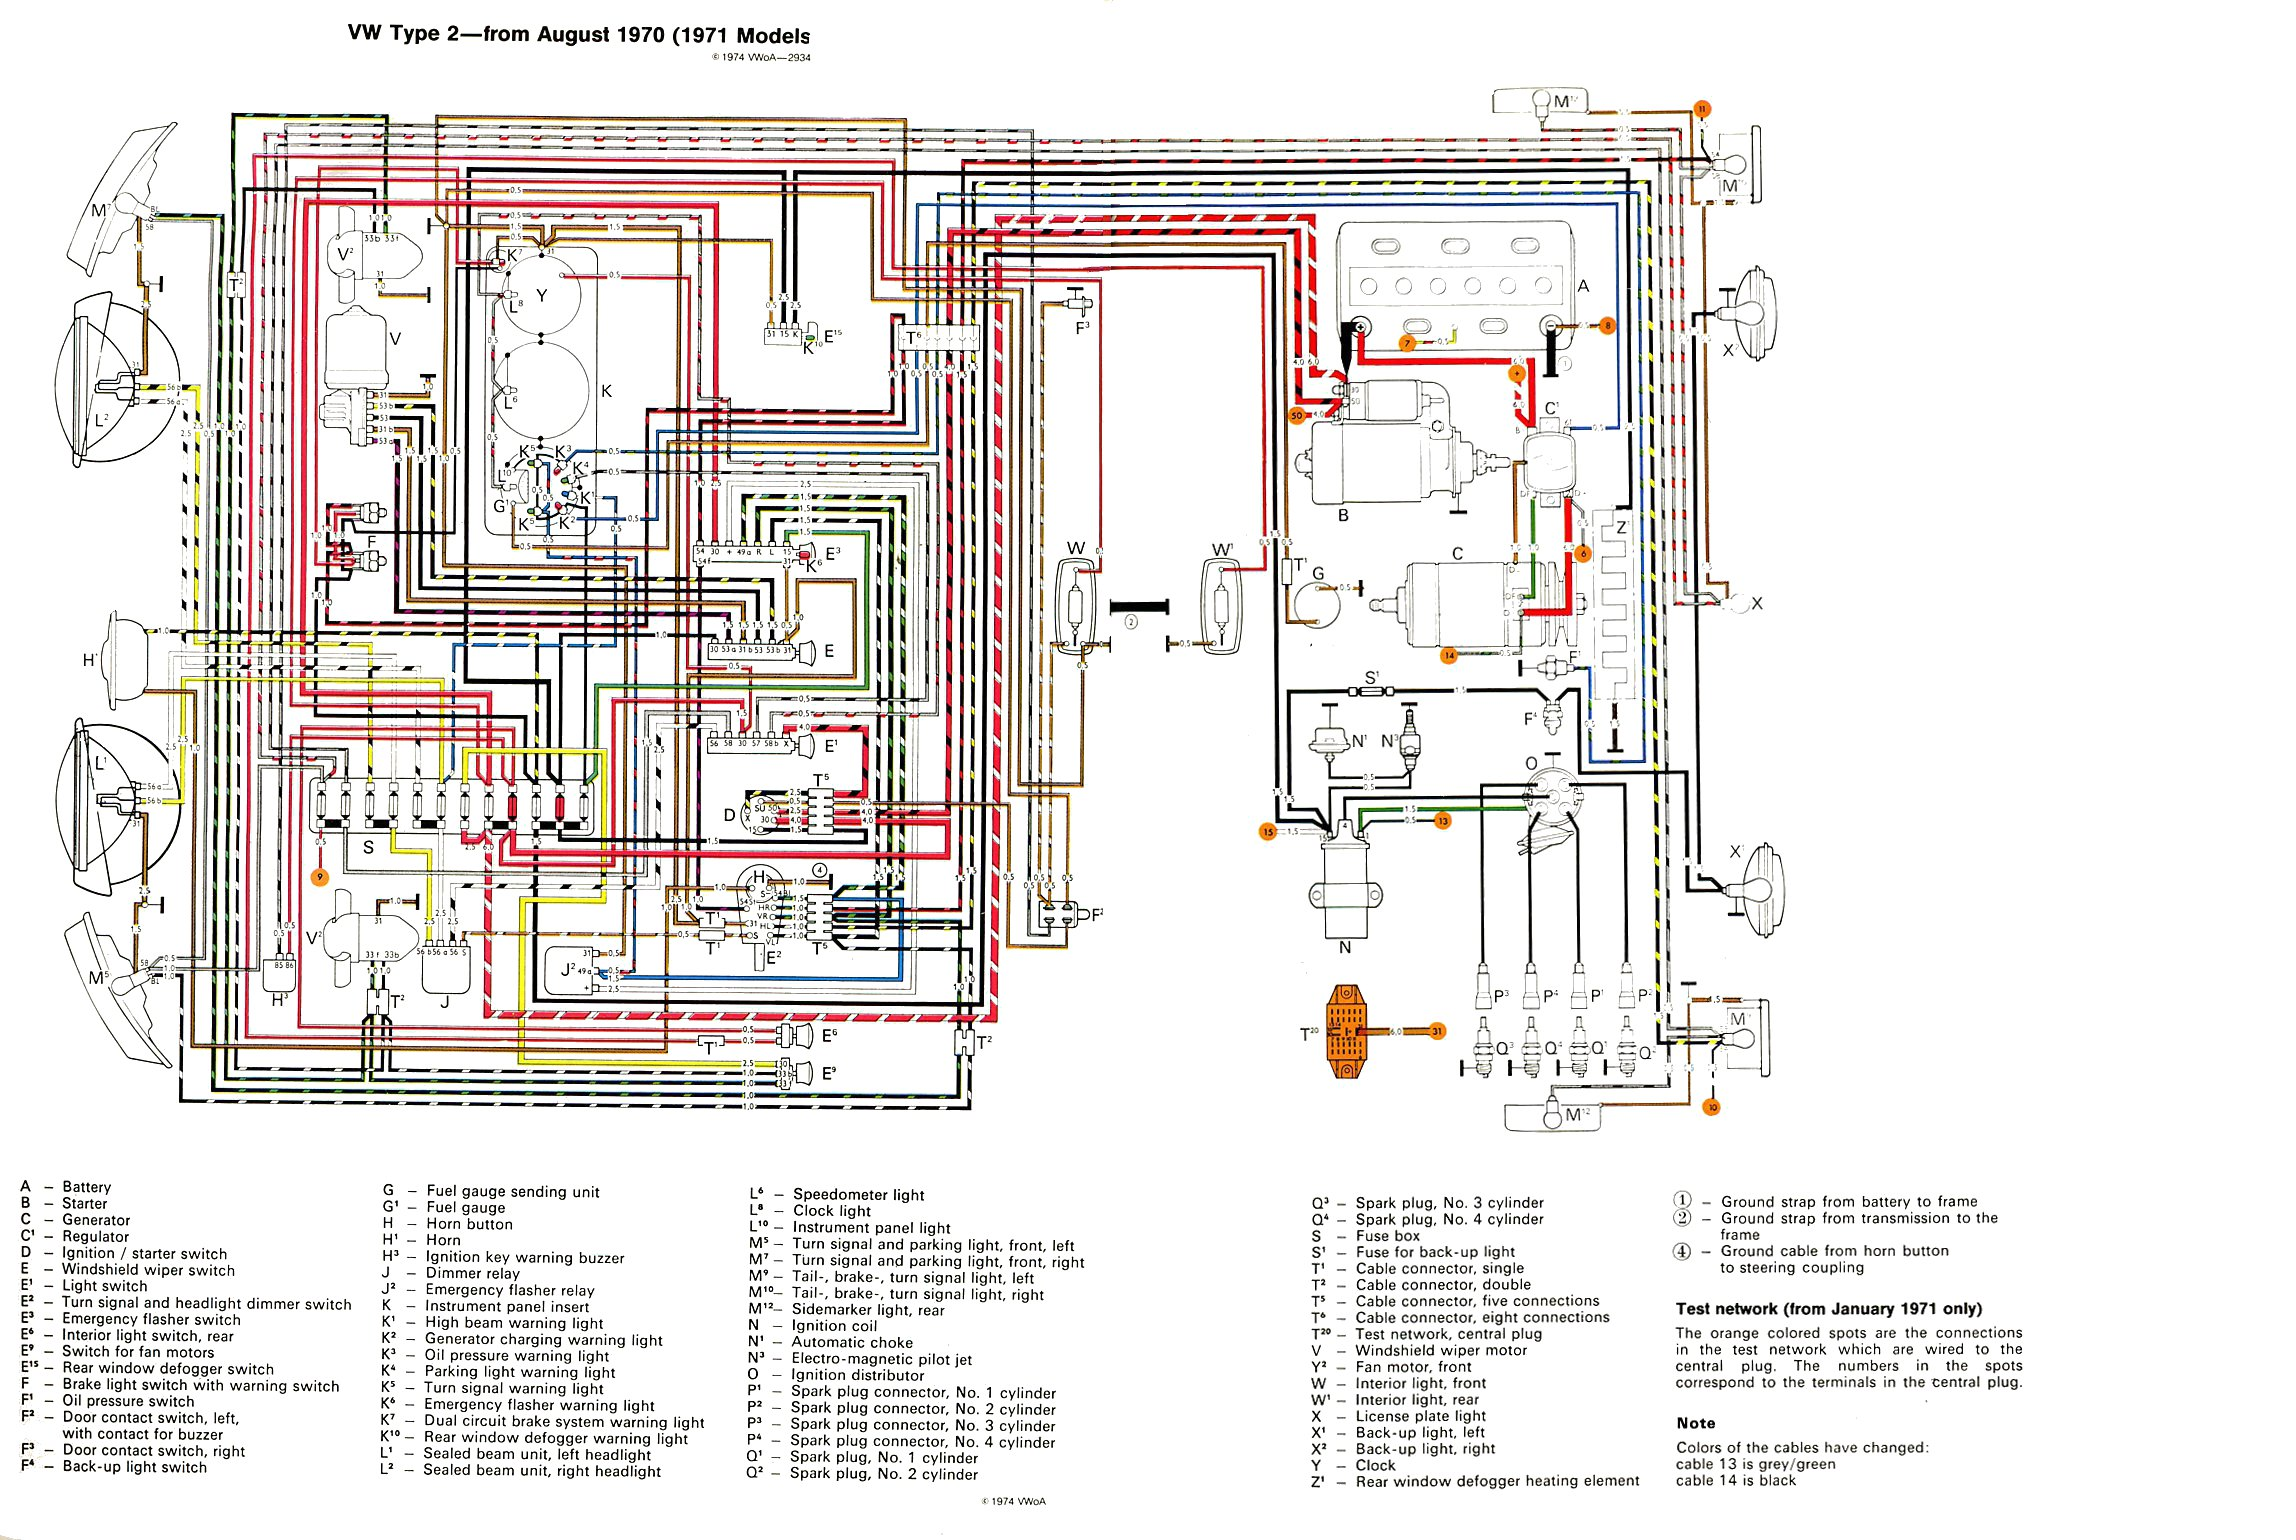 fuse box diagram in addition 1979 corvette starter wiring diagram rh gatbook co 2007 Peterbilt Wiring Diagram 06 Peterbilt 379 Wiring Schematic